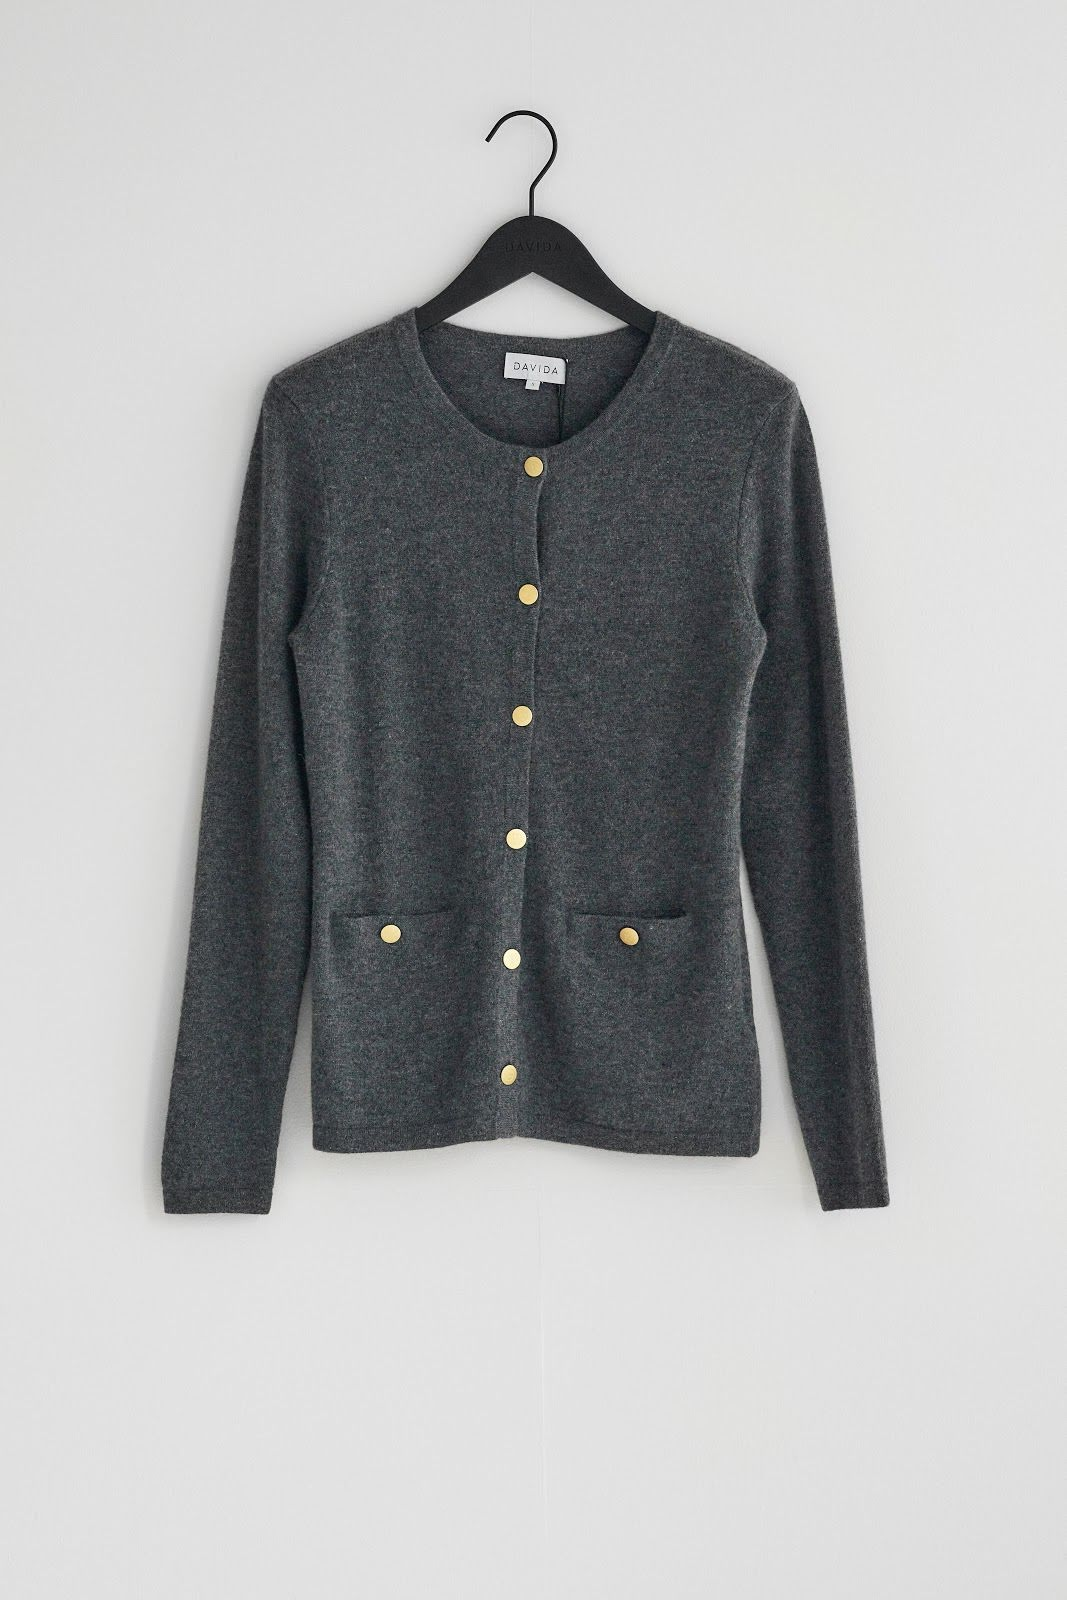 Cardigan Gold Buttons